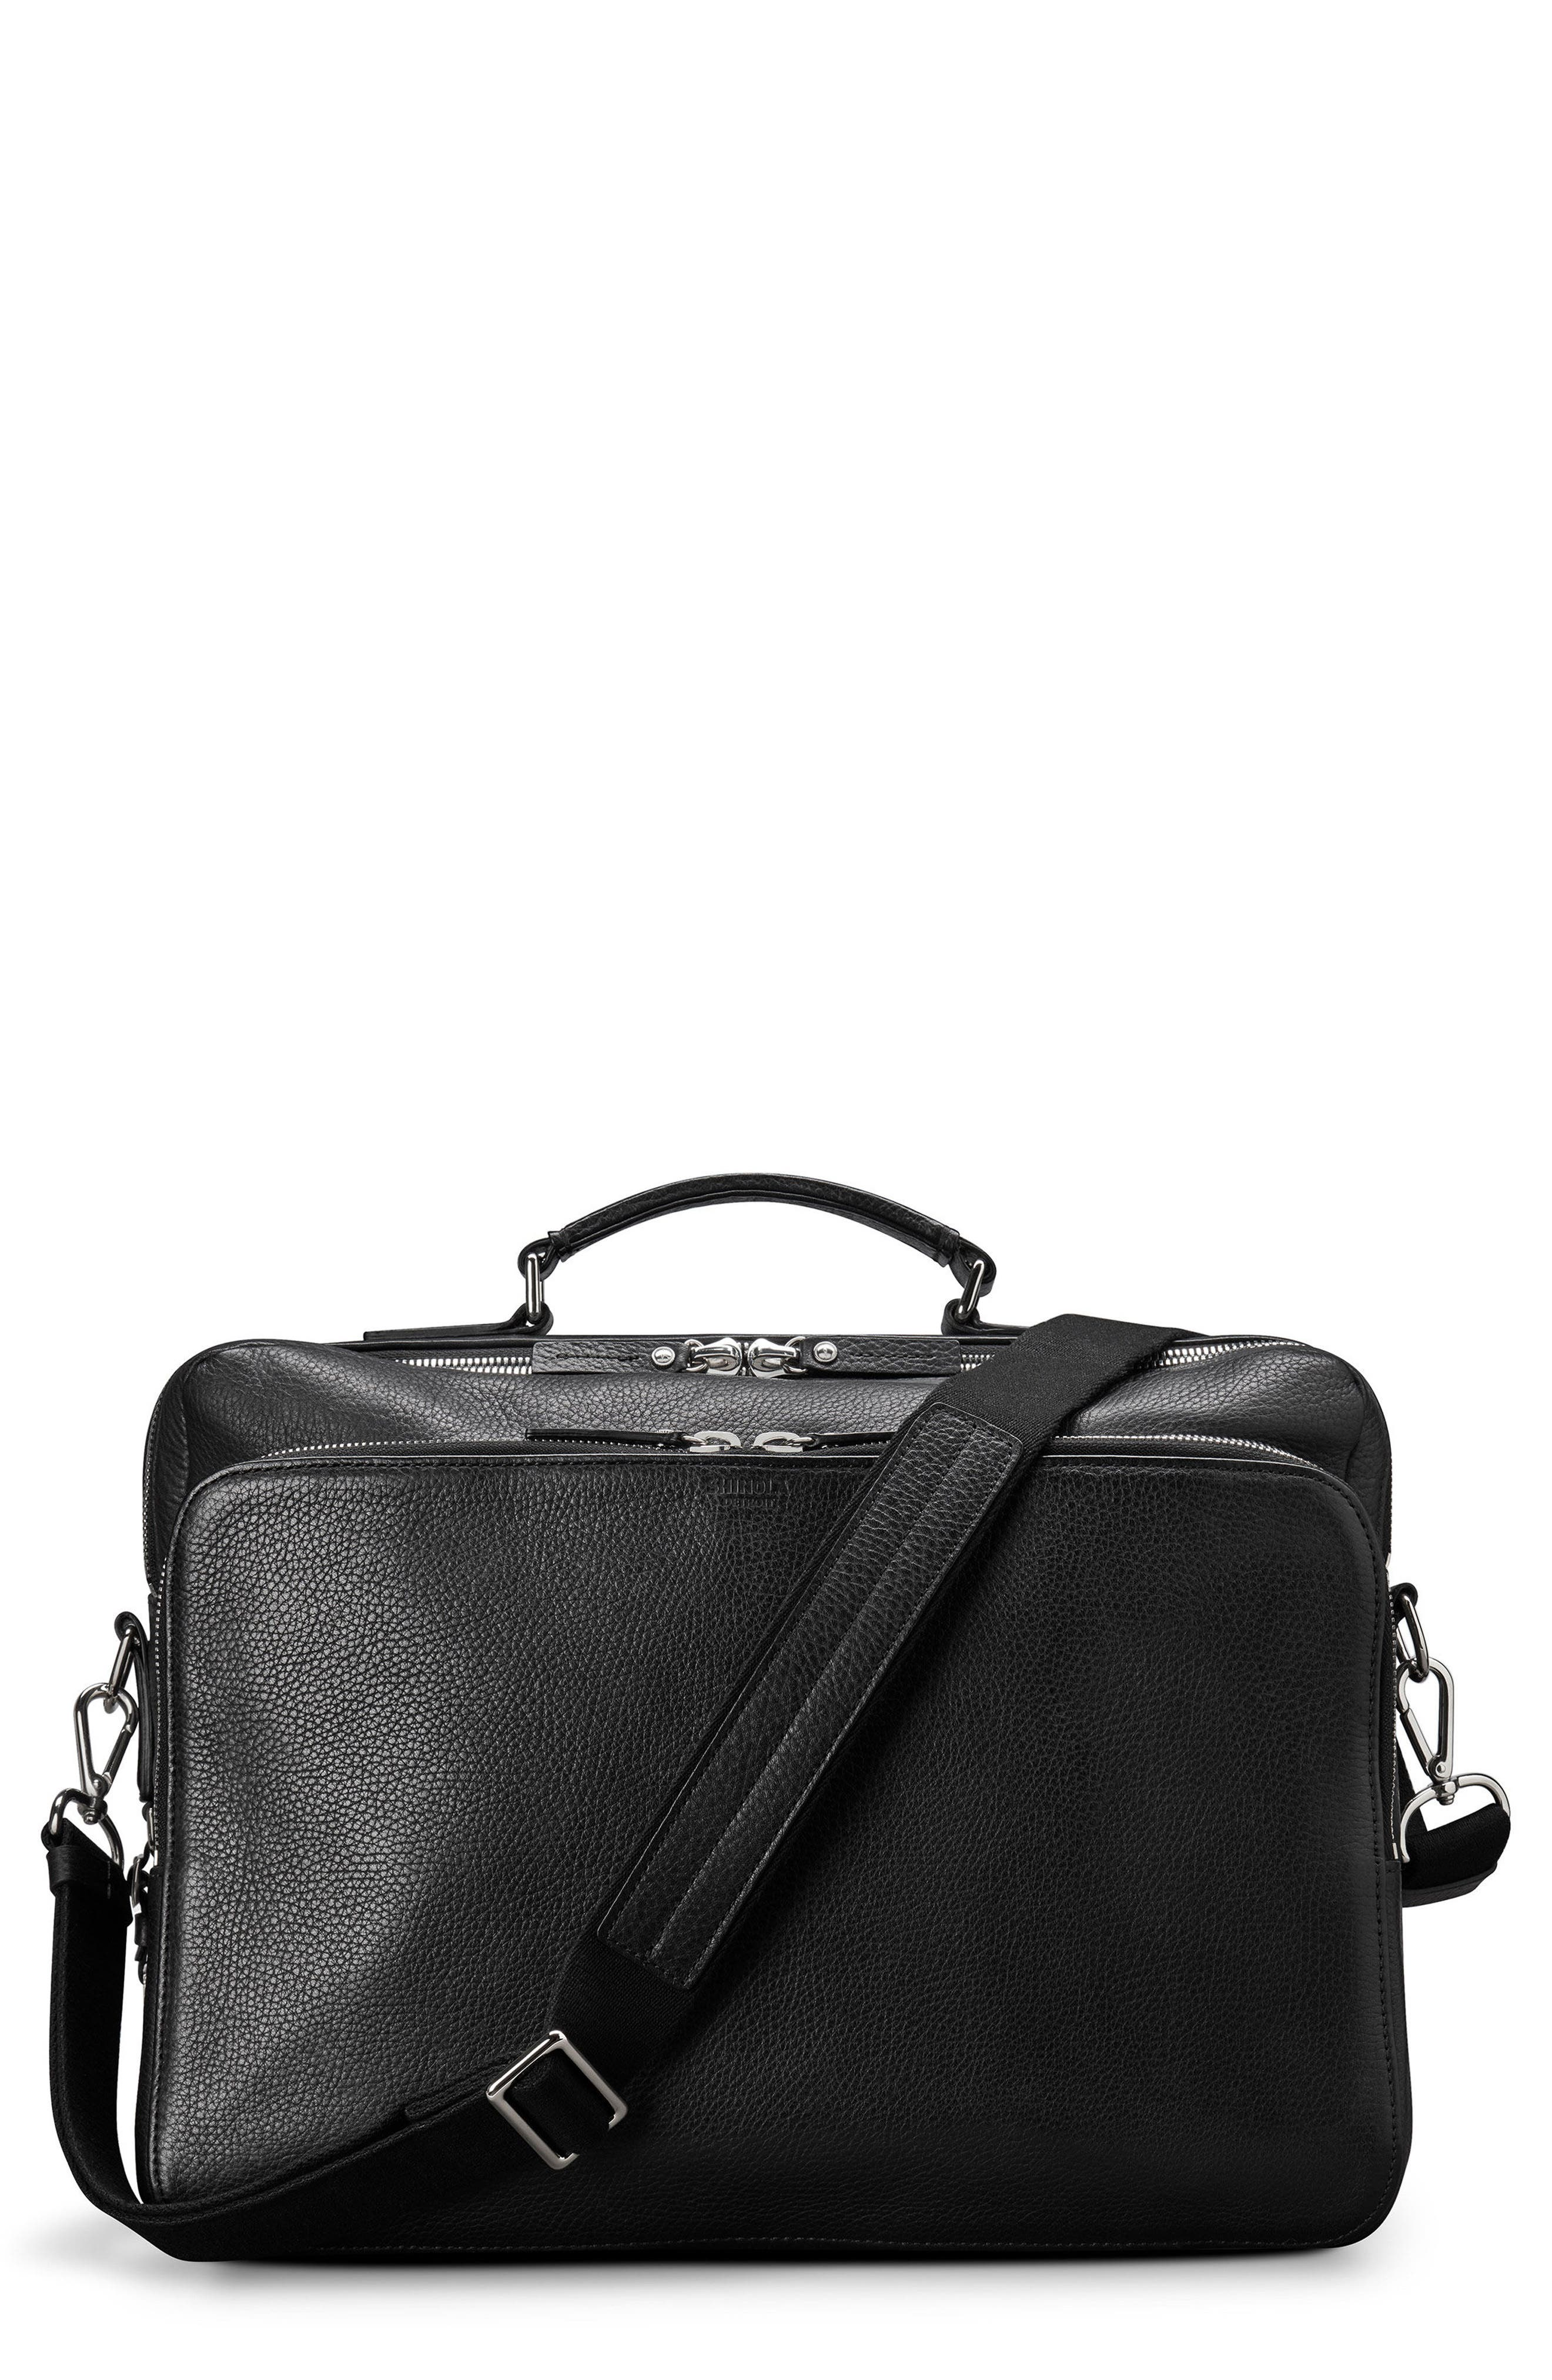 Canfield Briefcase,                         Main,                         color, Black